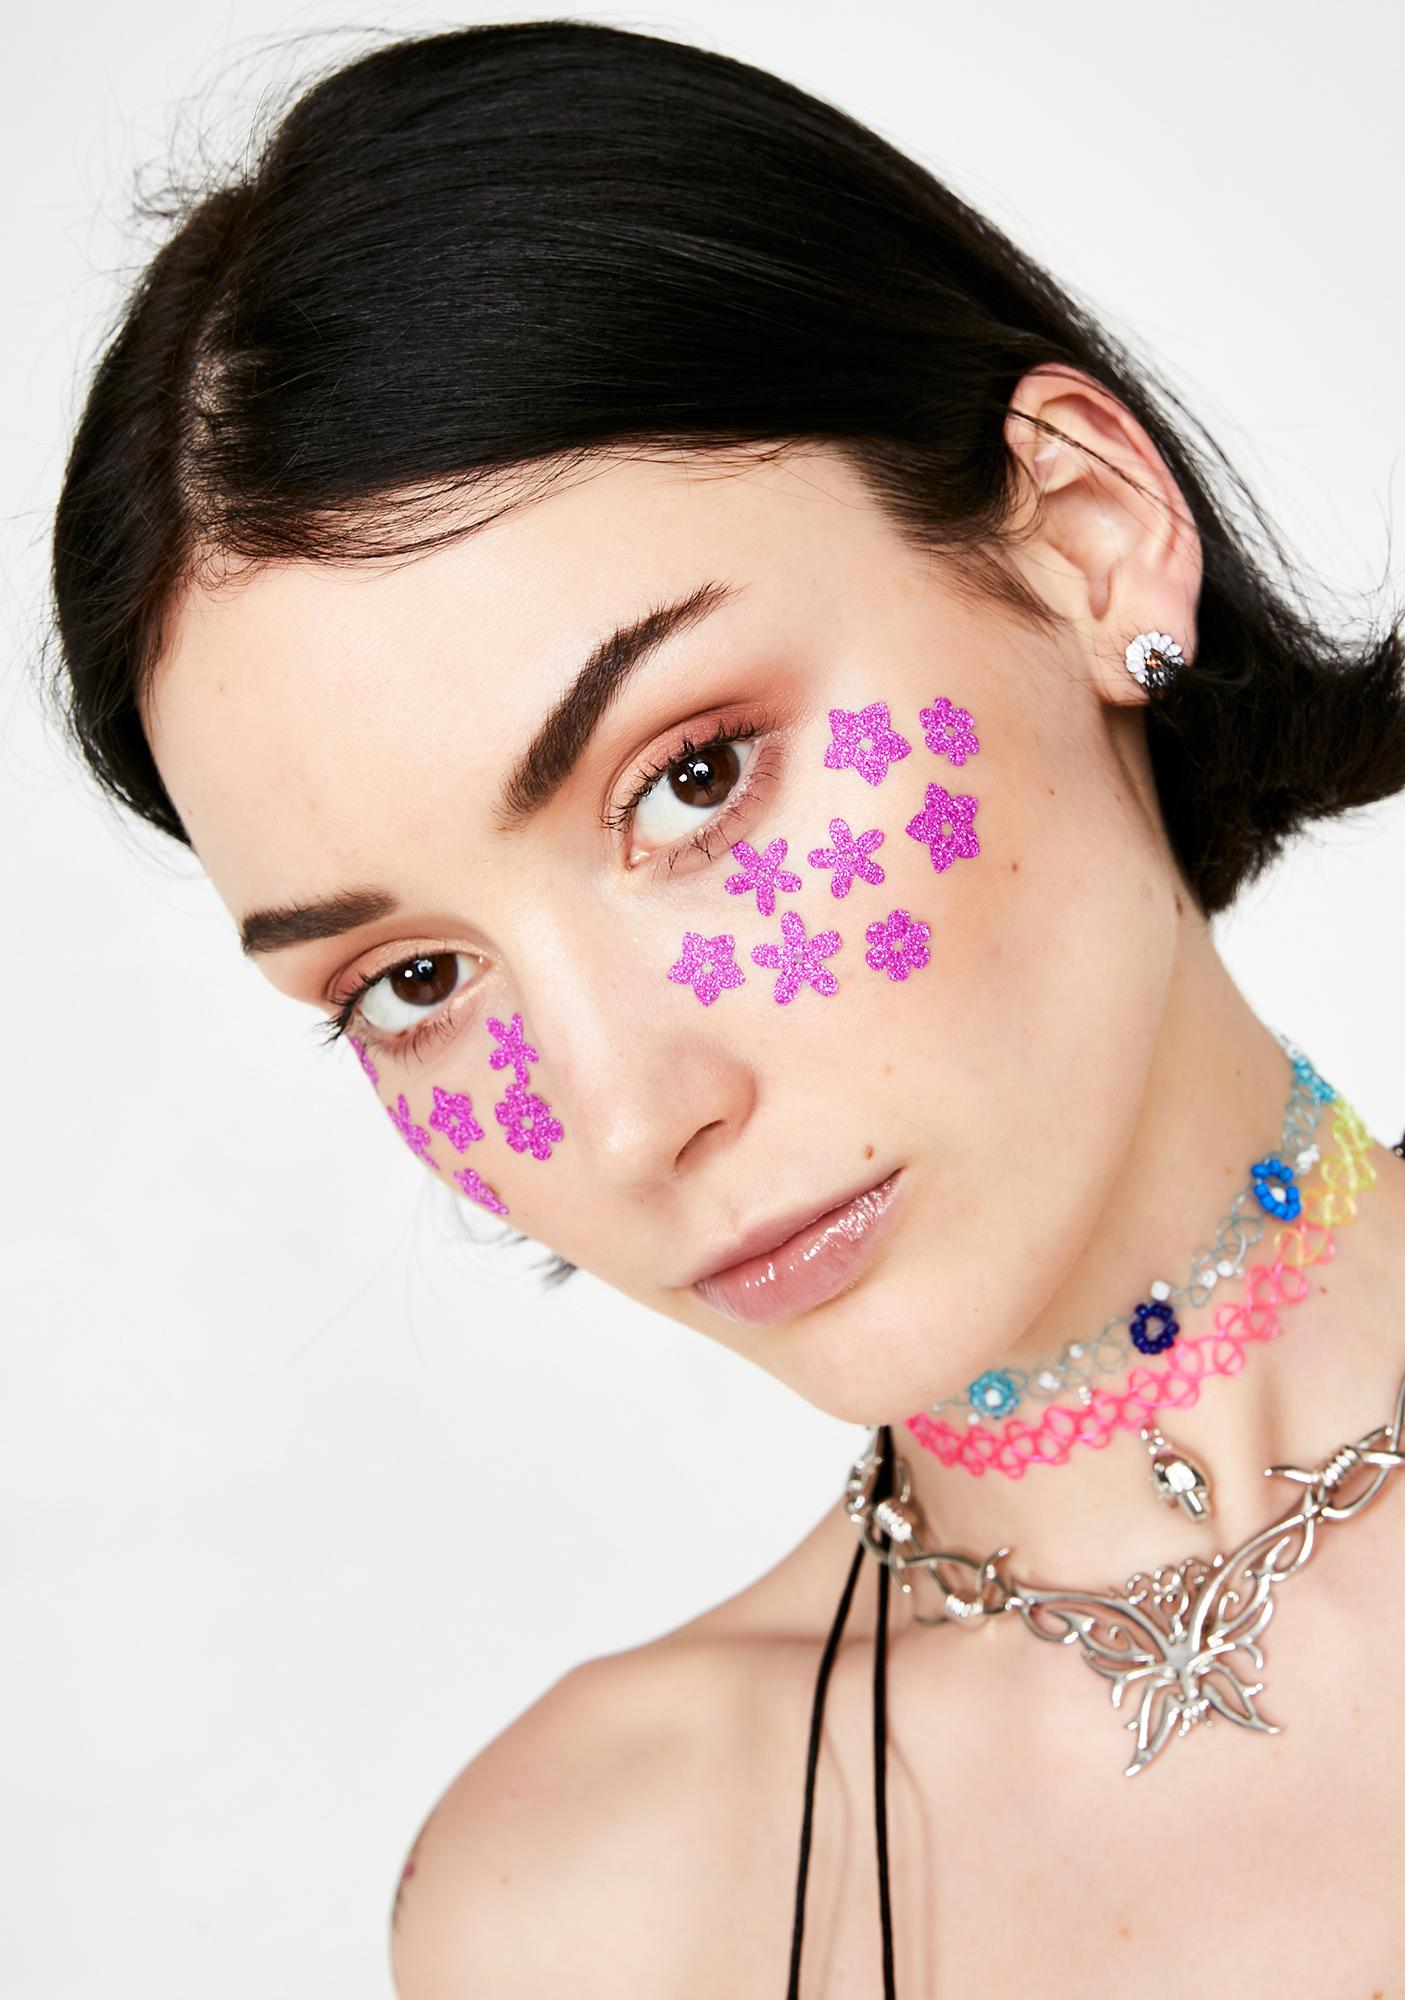 Stinnys Flower Body N' Face Stickers